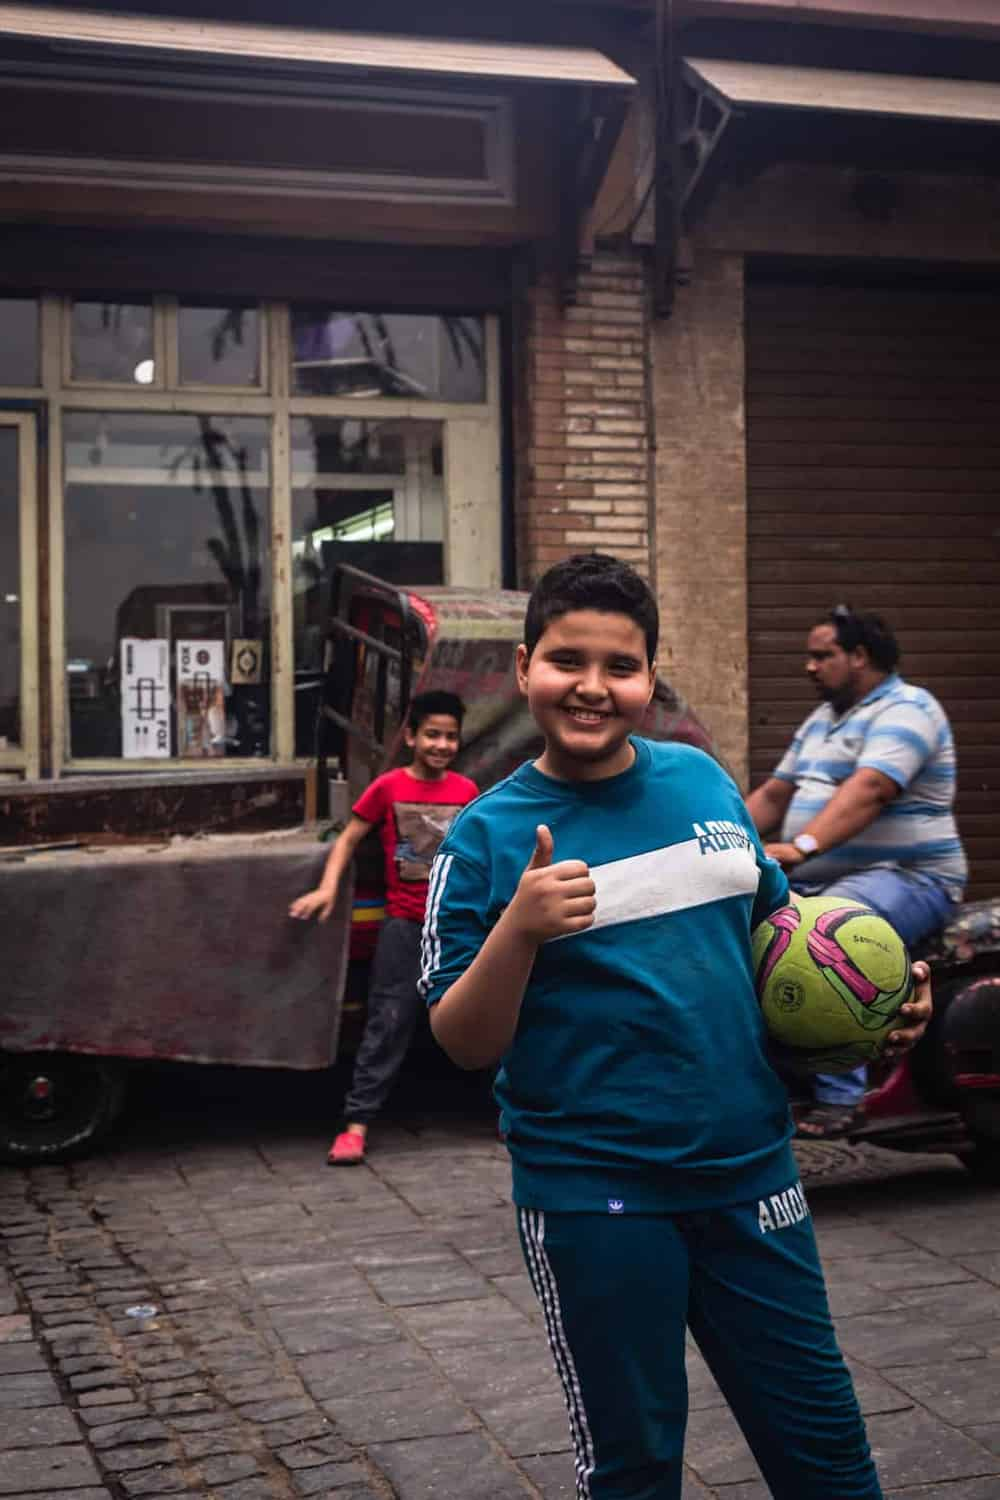 portrait shot of a kid holding soccer ball, posing with at thumbs up in Old Cairo.